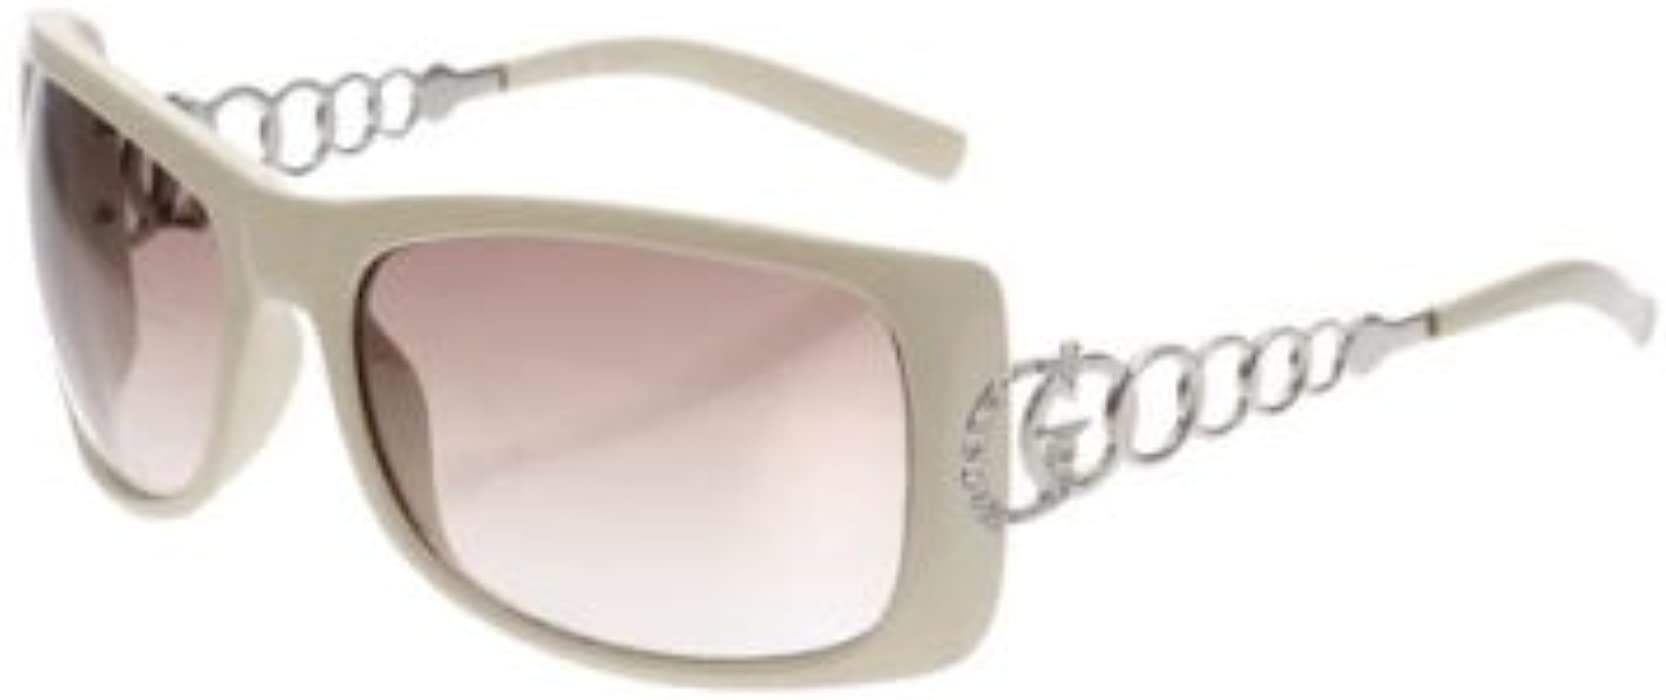 GUESS GU6332 TO-34 Women's Sunglasses, Tortoise, Made in